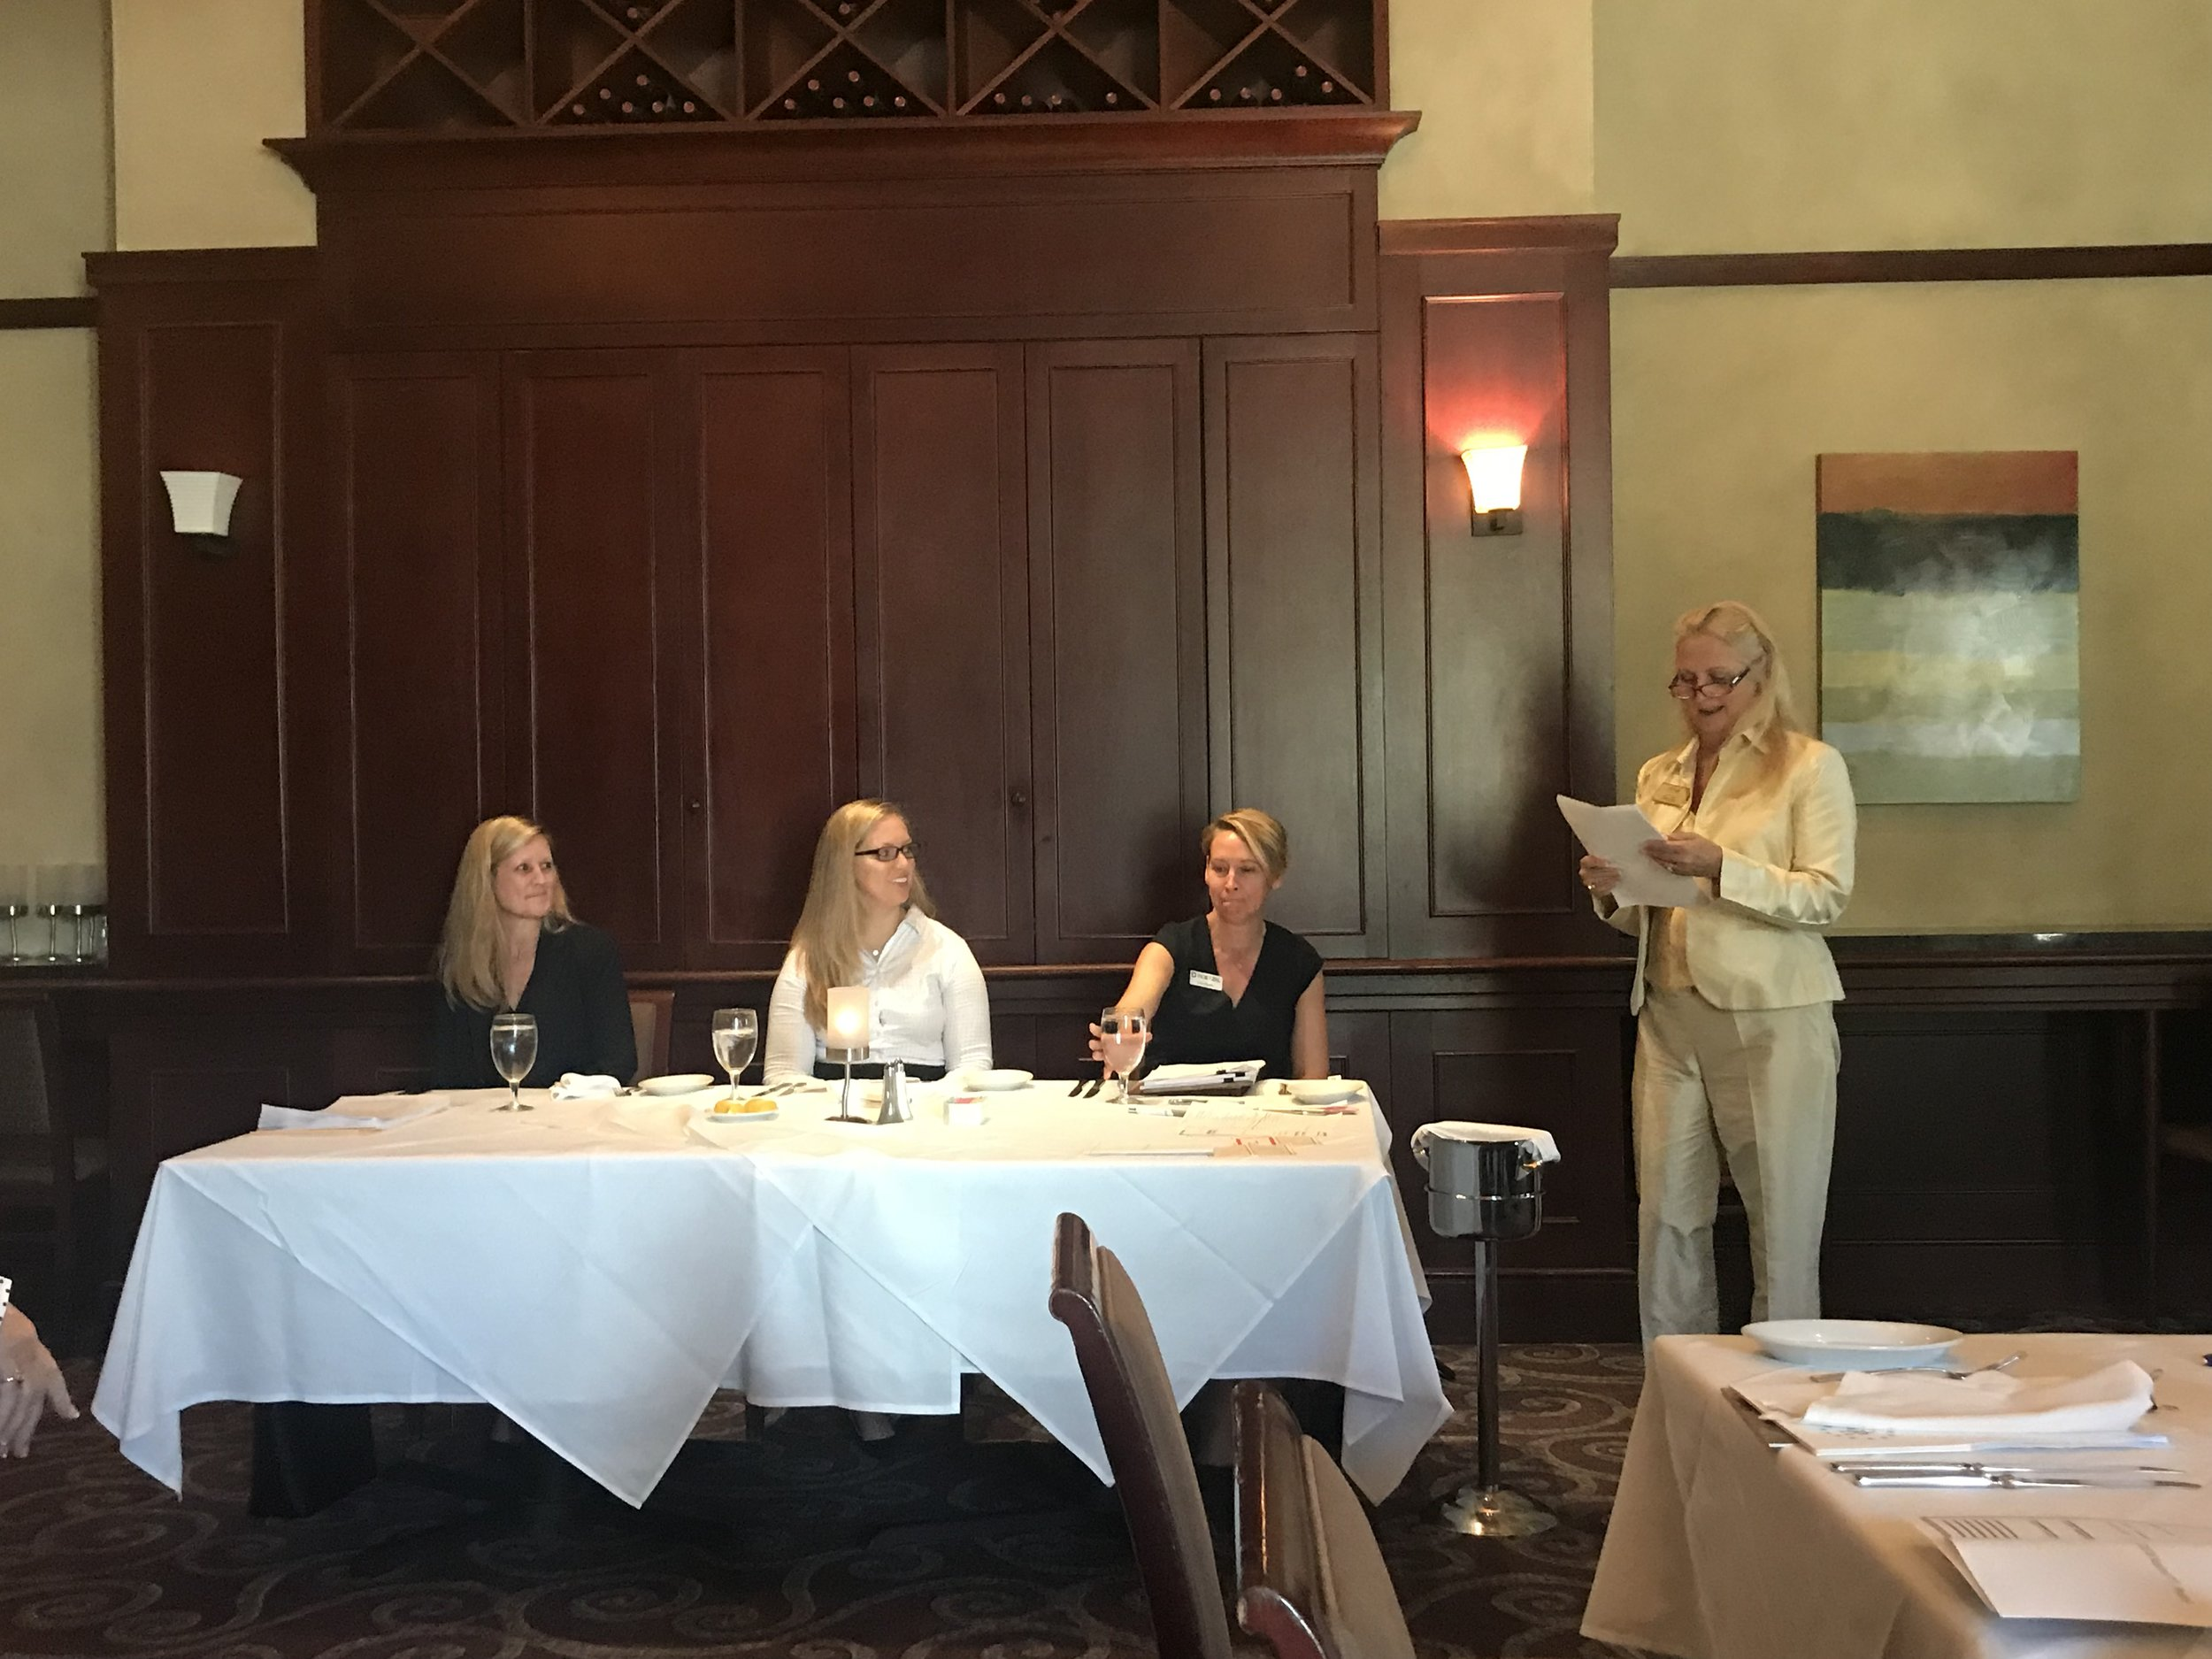 Cheryl Hastings, Jennifer Cachon Juchnowicz and Lori Moore are the featured panelists at the Commercial Real Estate Women (CREW) Luncheon at Ruth Chris Steakhouse on August 15, 2018